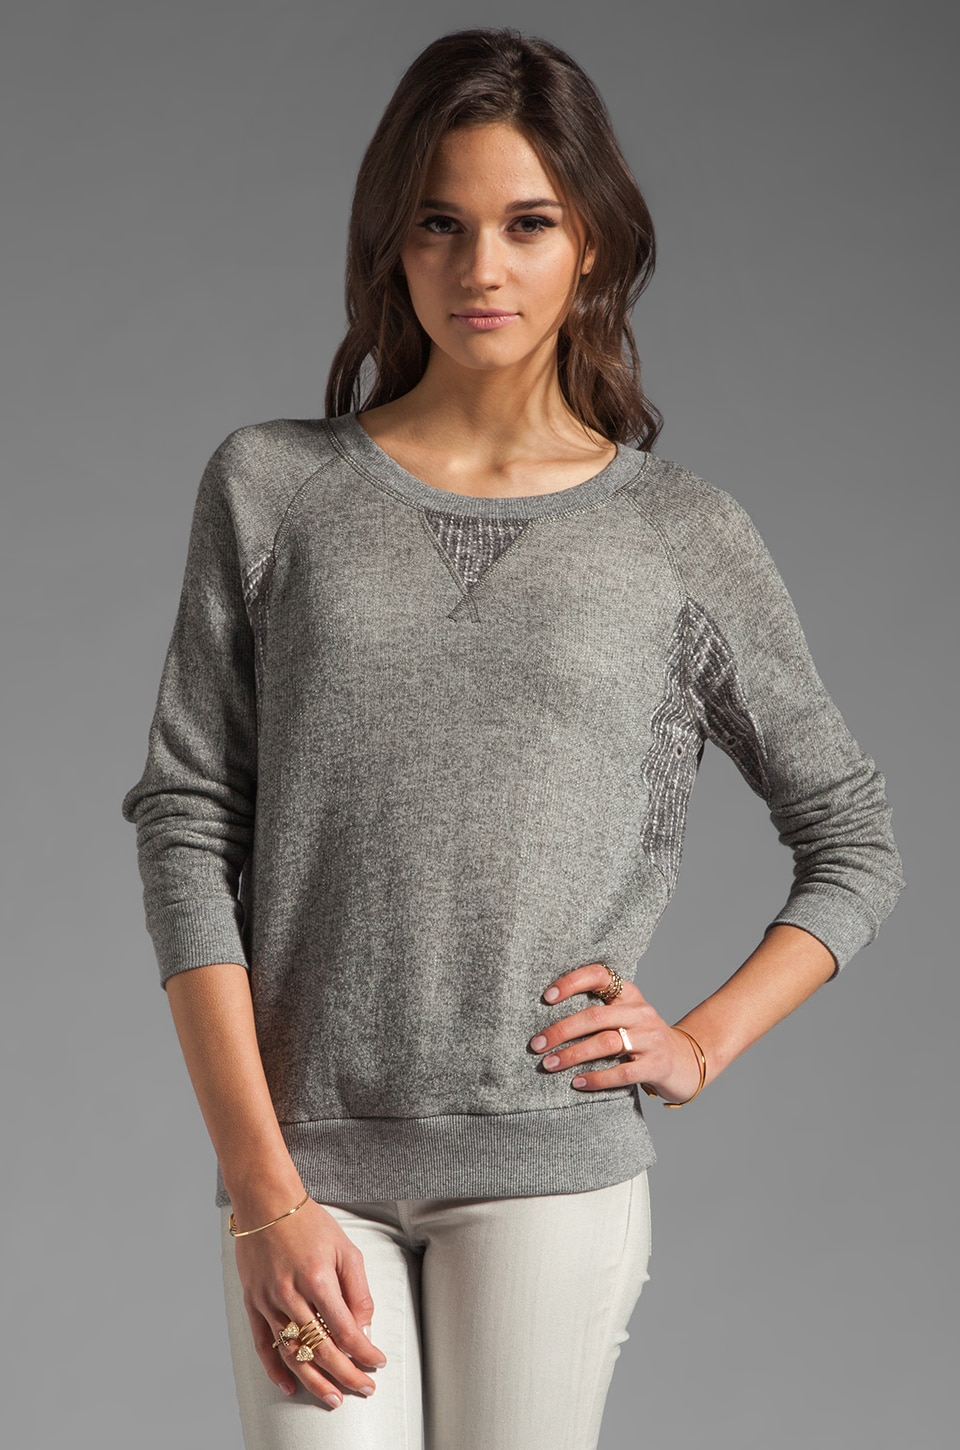 Marc by Marc Jacobs Resort Win Loopback Terry Long Sleeve in Athletic Grey Melange